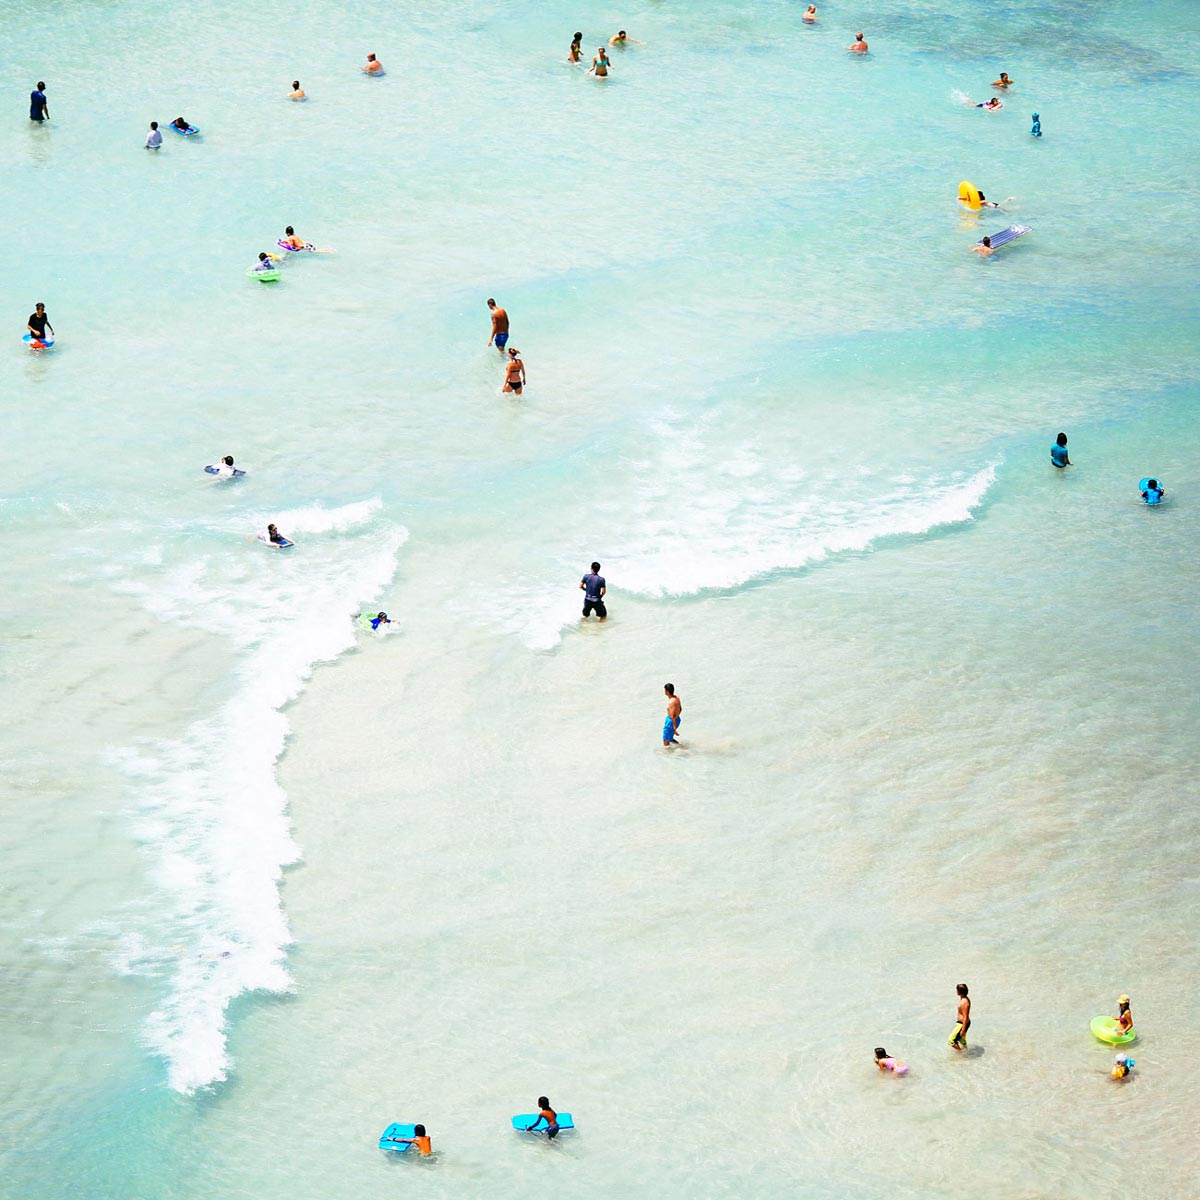 Photo by Max Wanger of people frolicking in the cool blue ocean water